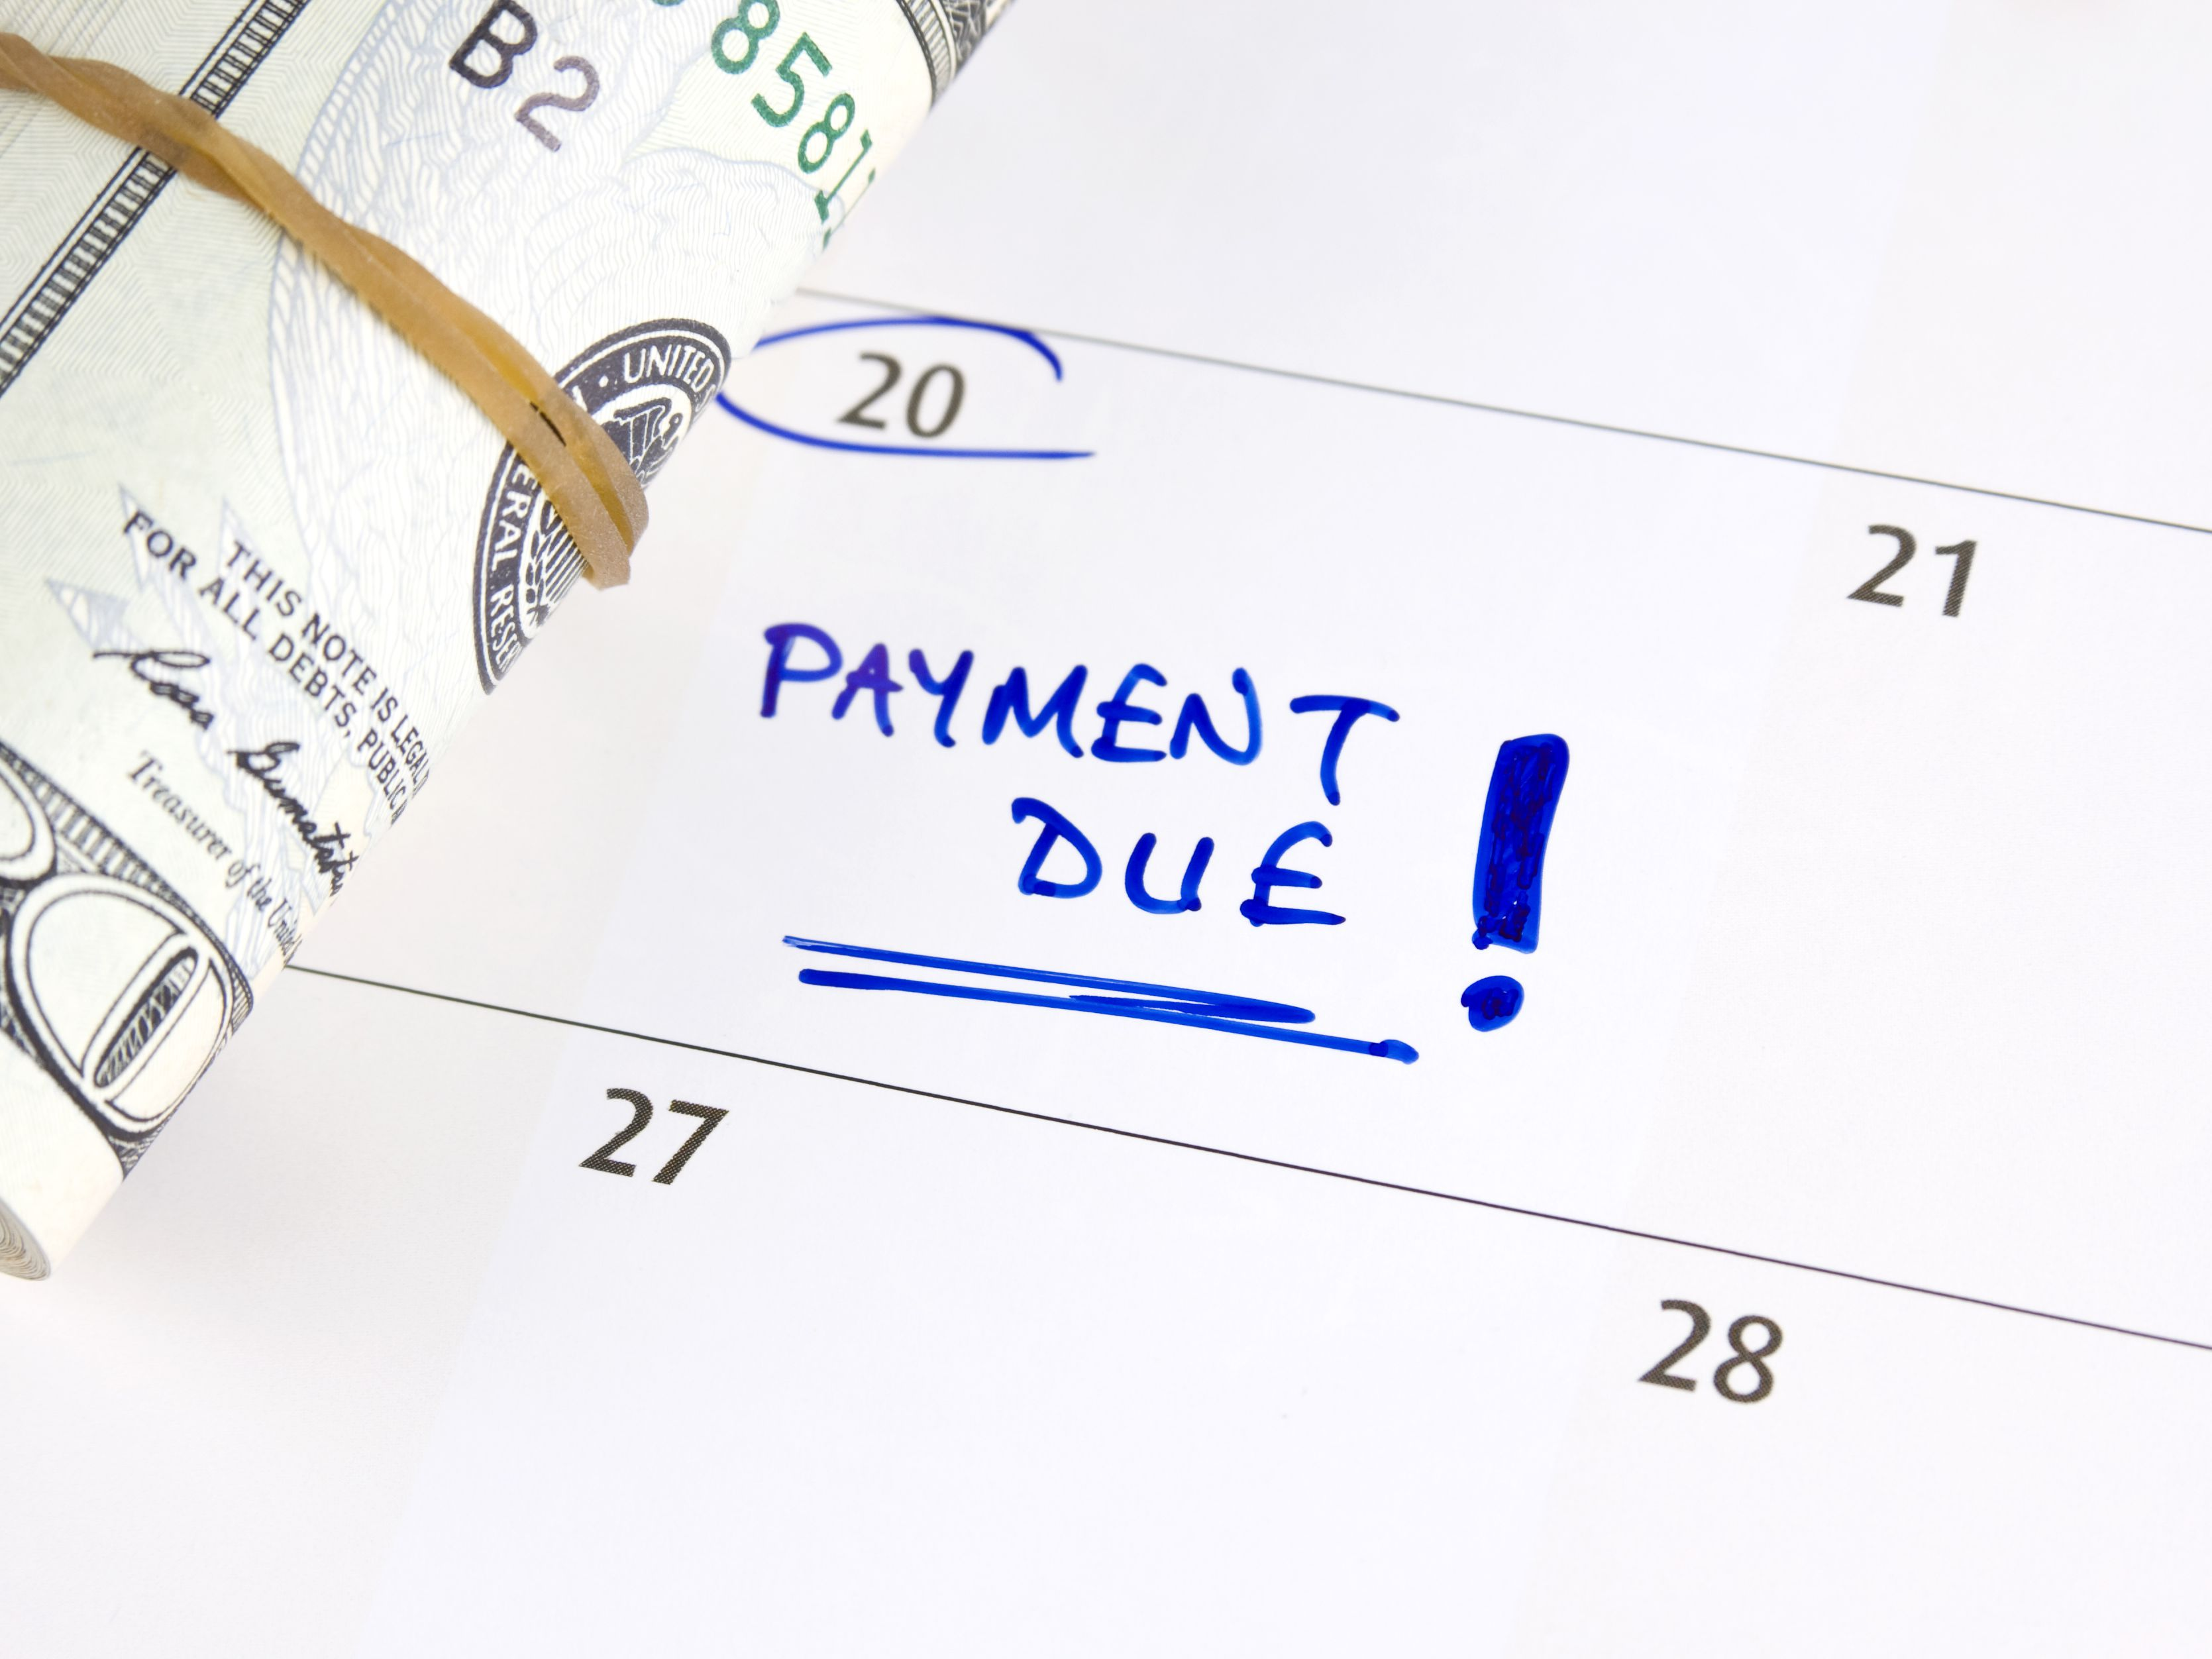 (the payment is late by at least 90 days.) if you don't pay the total amount due, you'll lose your medicare coverage. When Is My Credit Card Bill Due